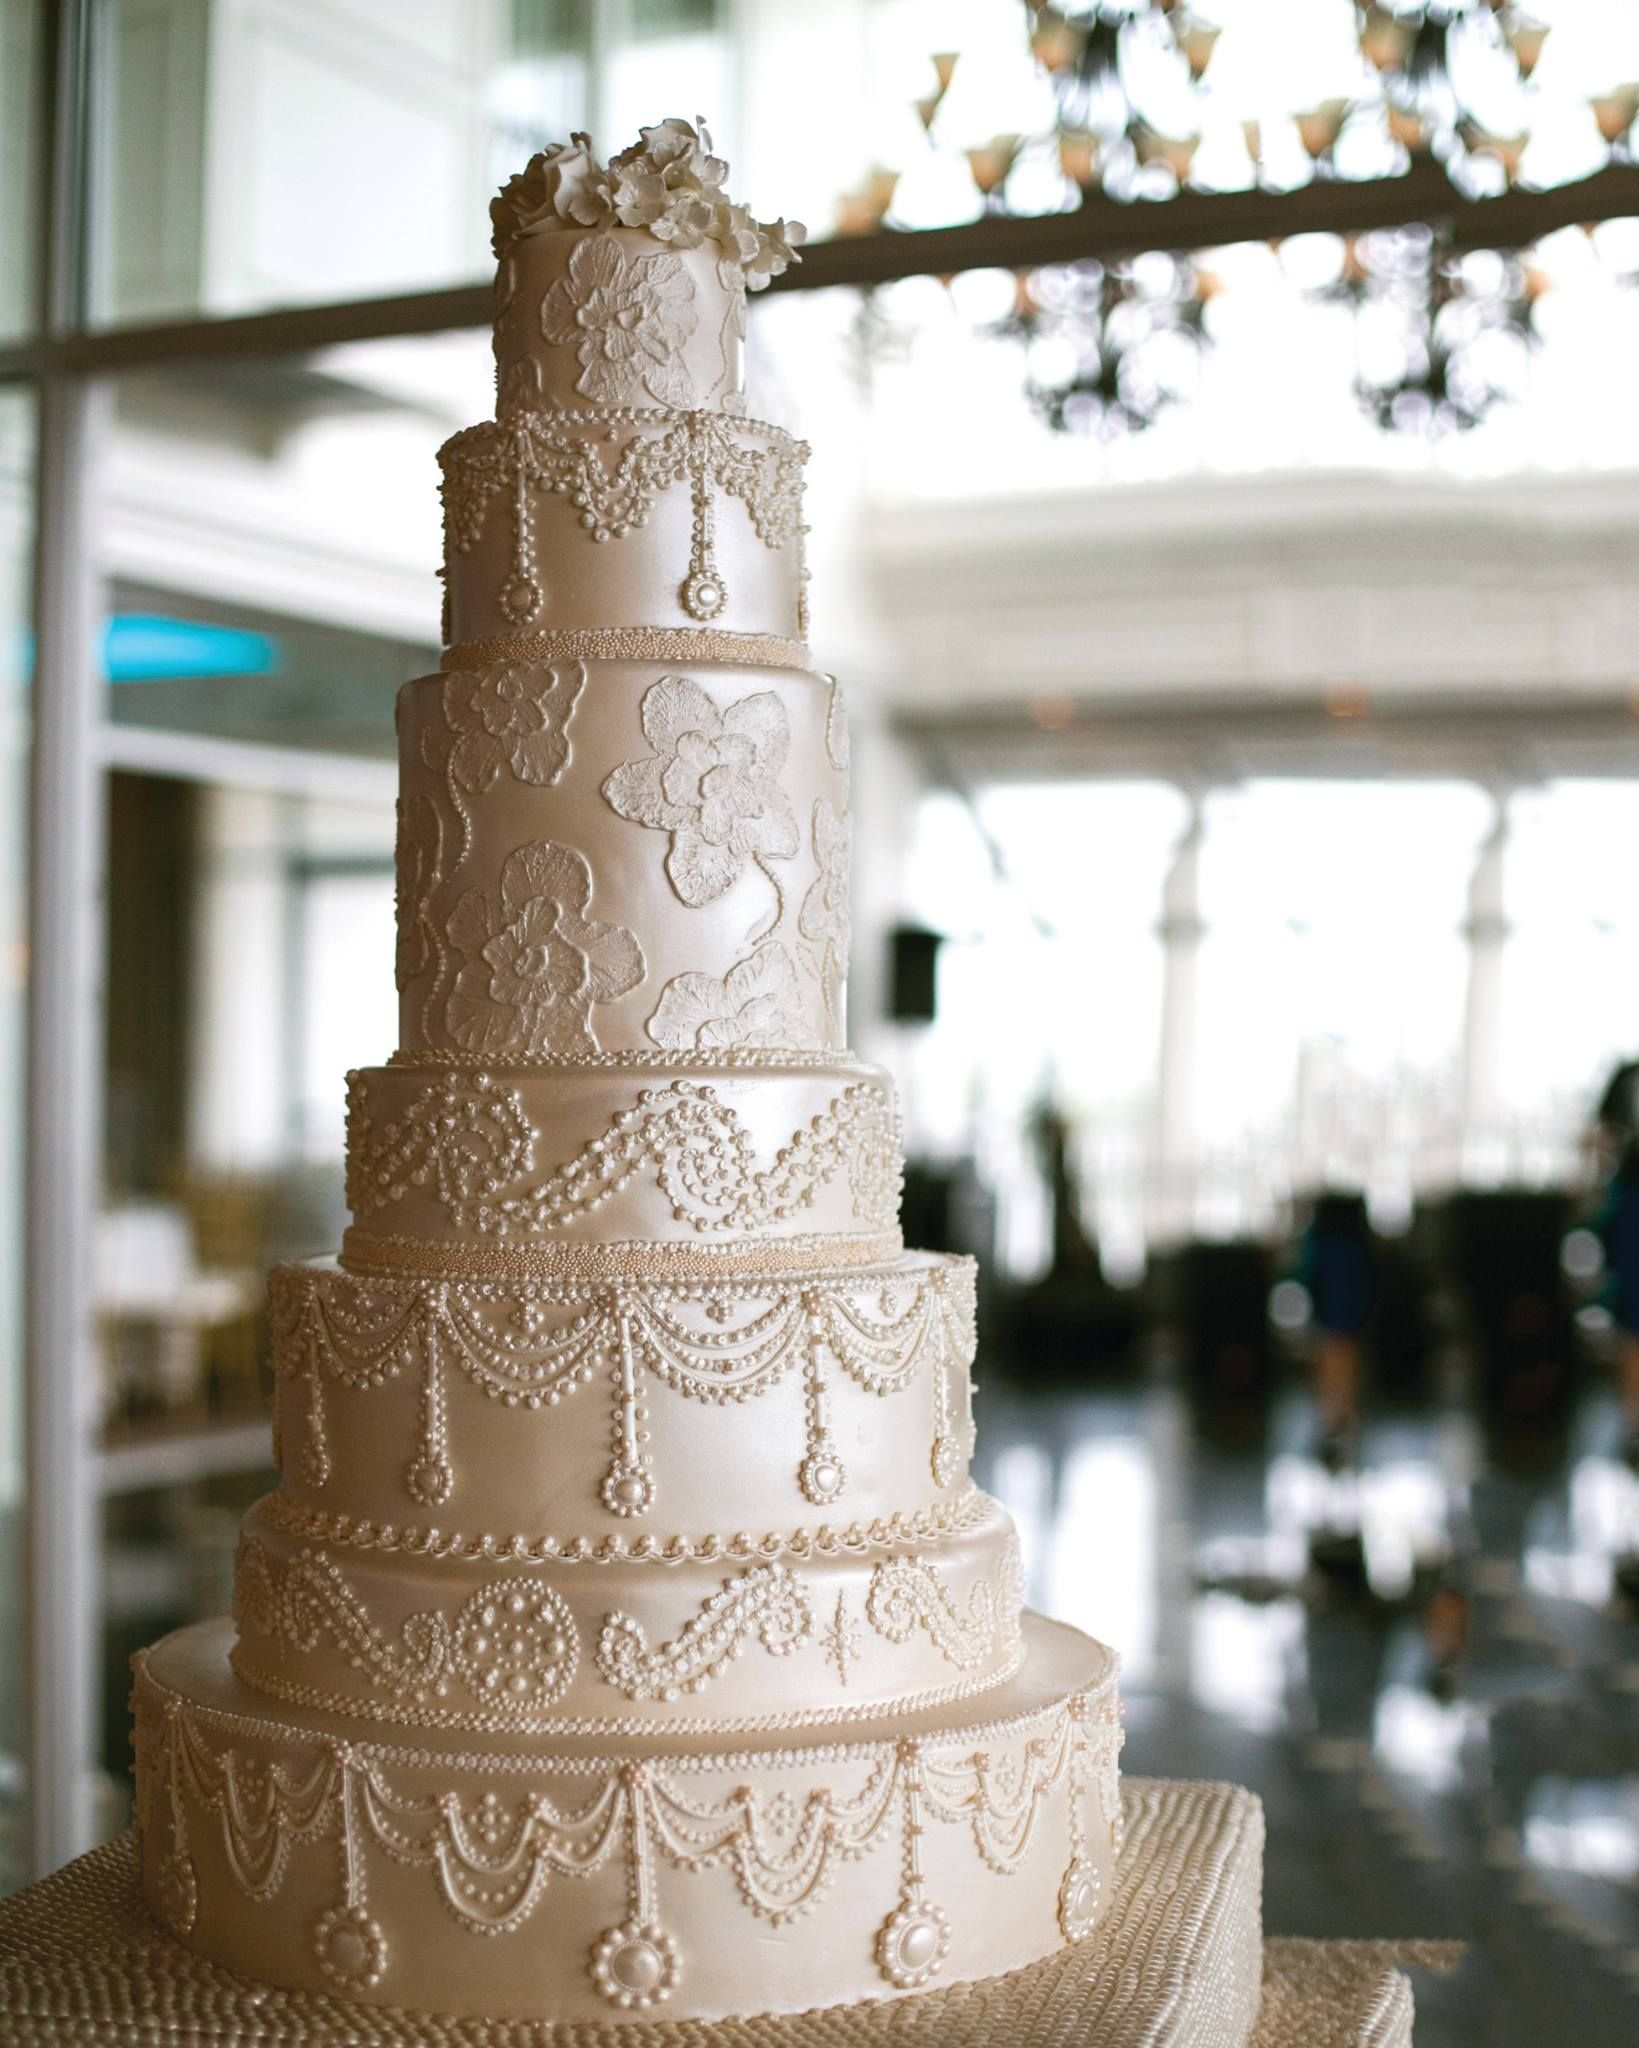 Gorgeous Wedding Cake With Intricate Piped Details Cake Boss Buddy